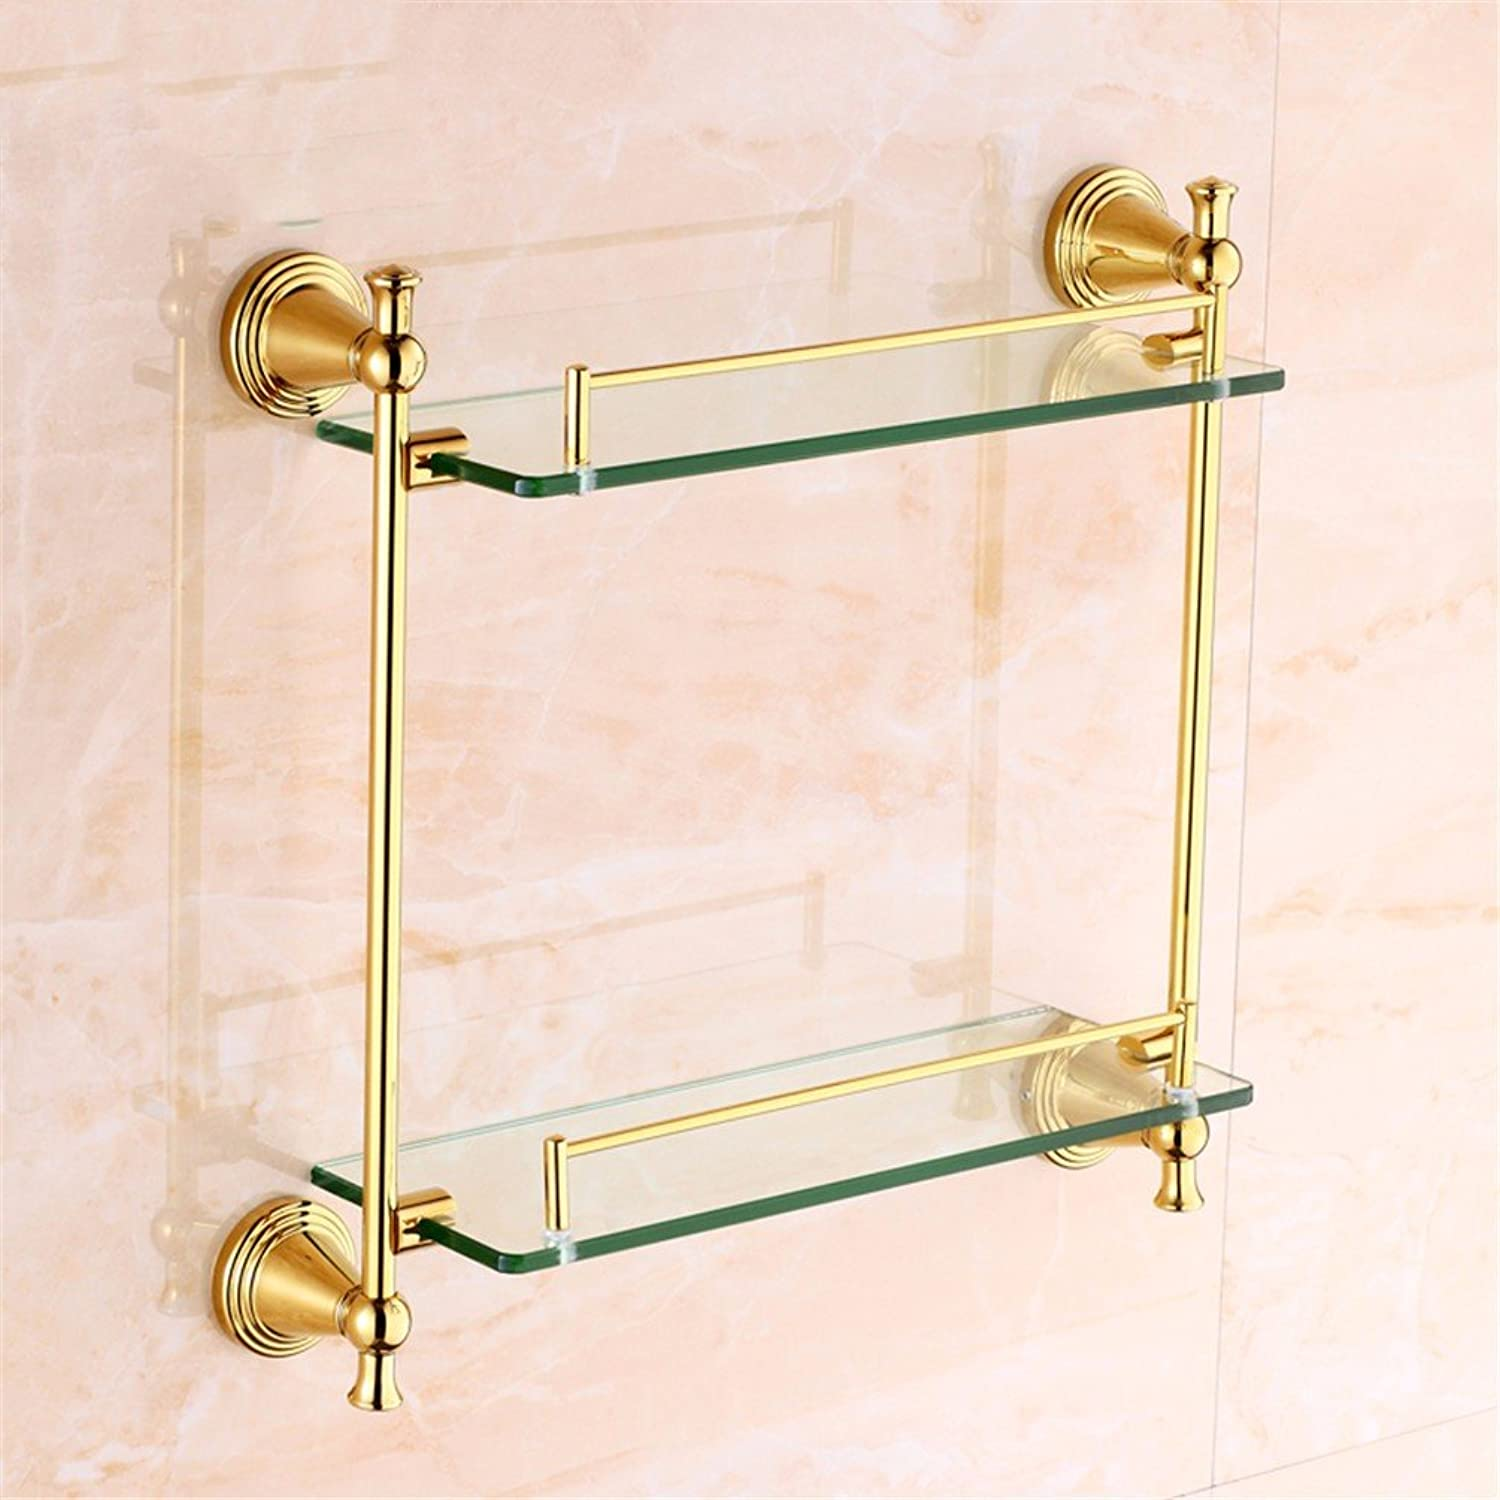 LAONA Euro-copper gold Bathroom Wall is a built-in shelf toilet paper holder Toilet brush, built-in shelf 2